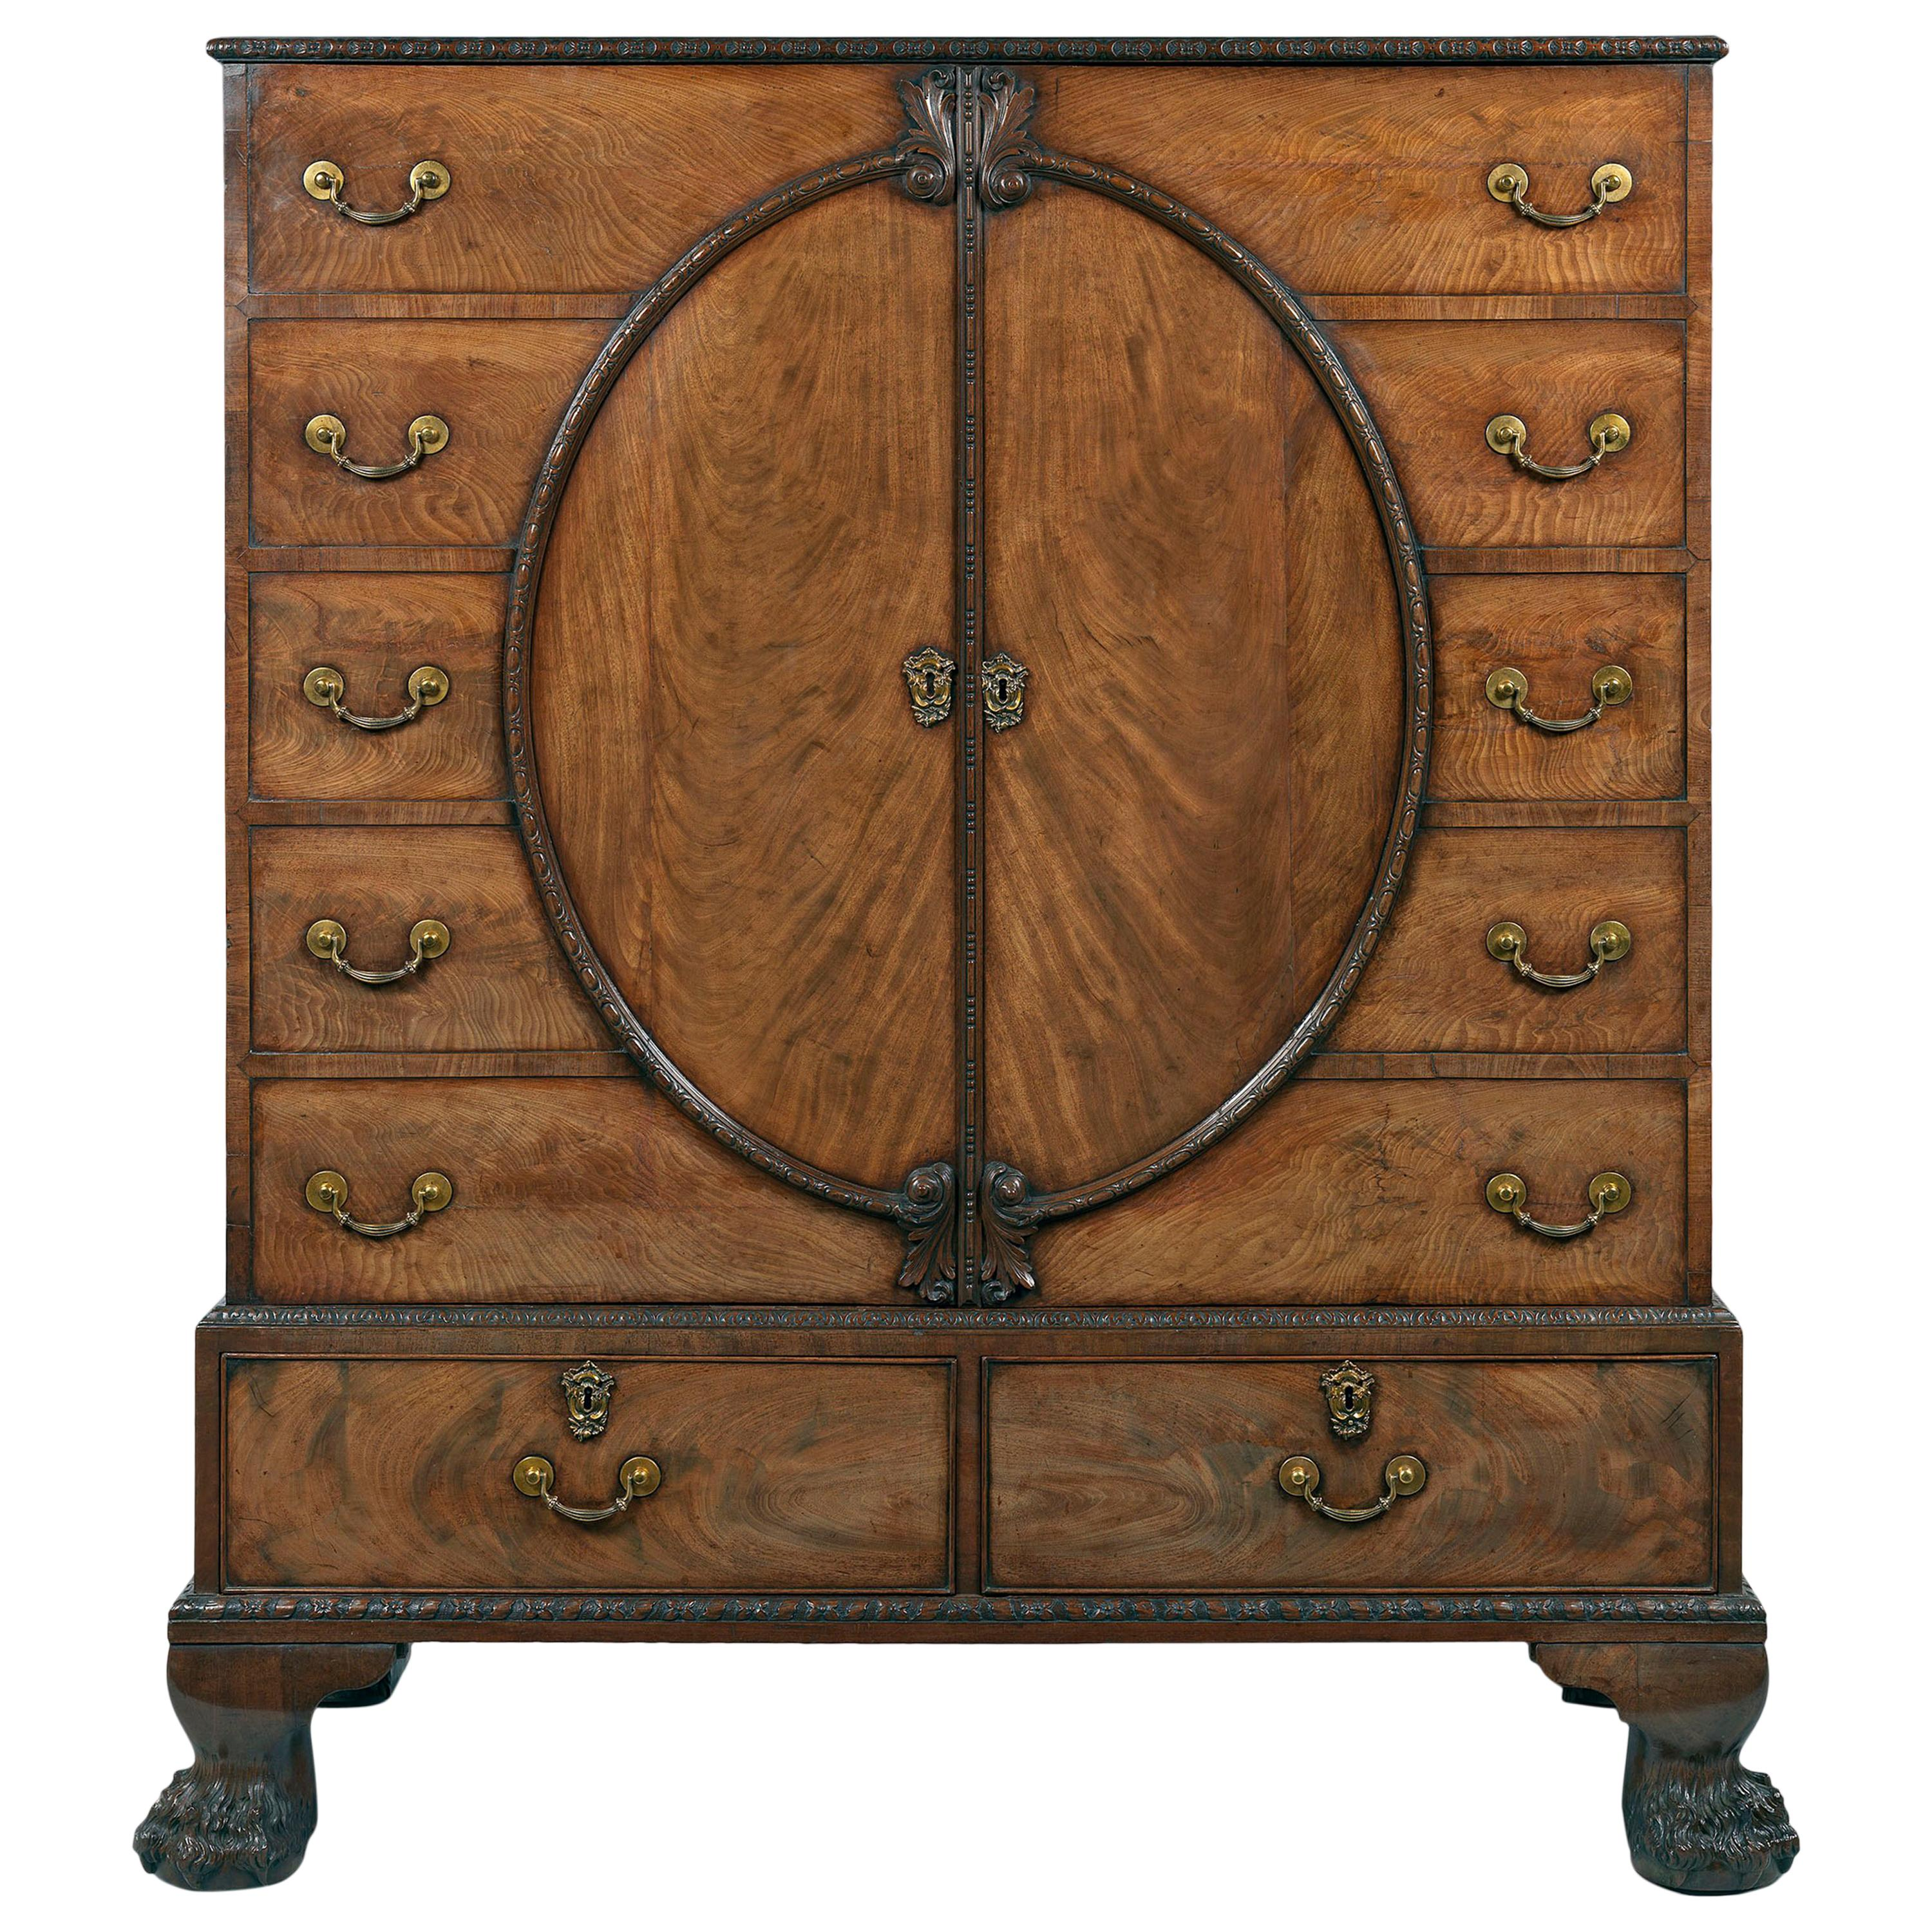 9307af95f93a9 George III Mahogany Breakfront Antique China Cabinet Bookcase ...